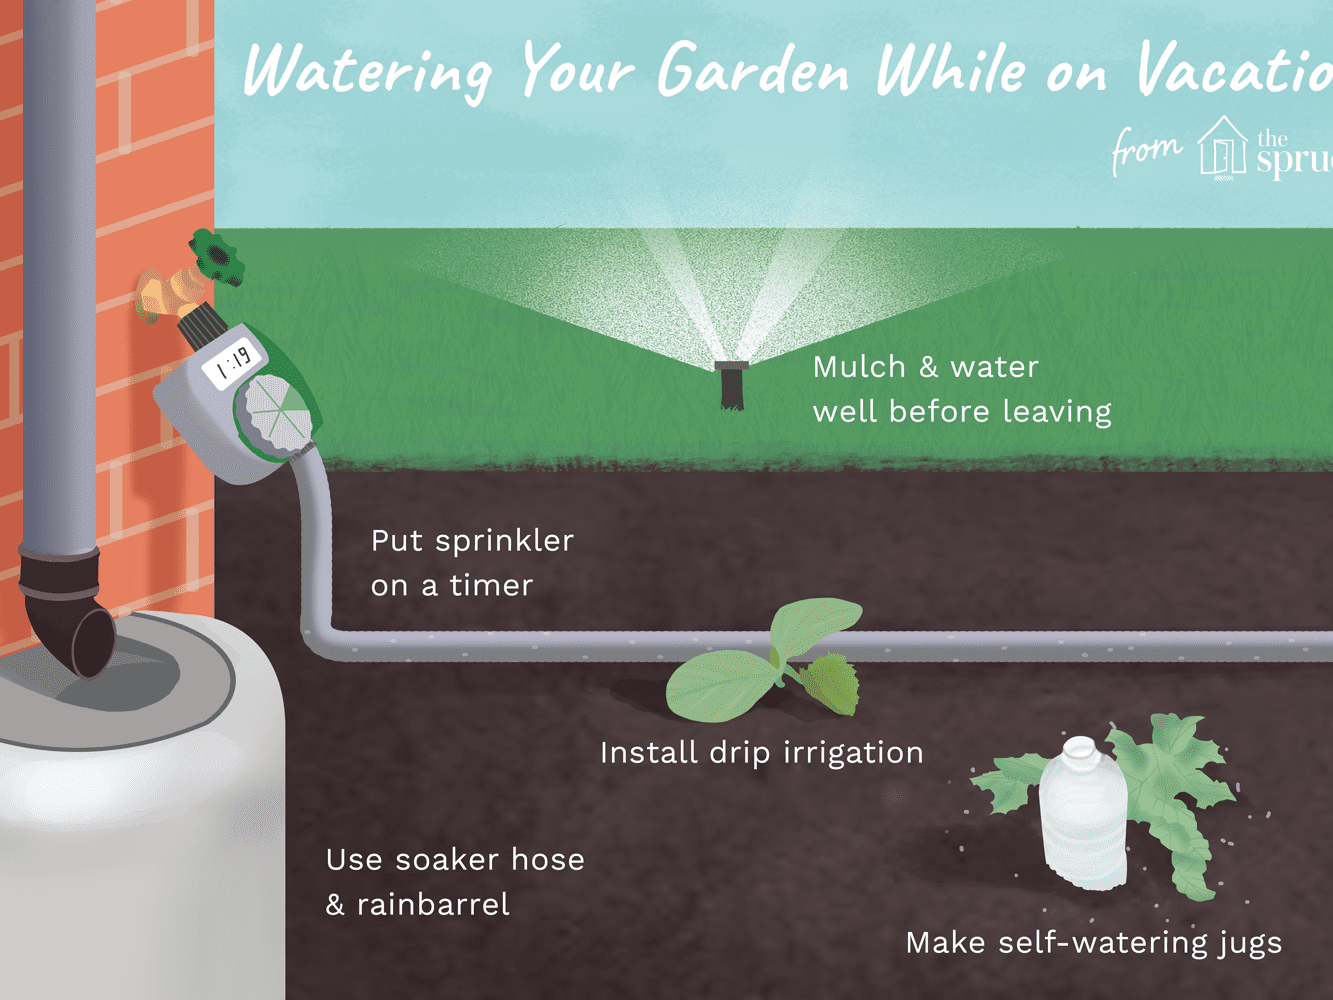 Watering Plants While on Vacation